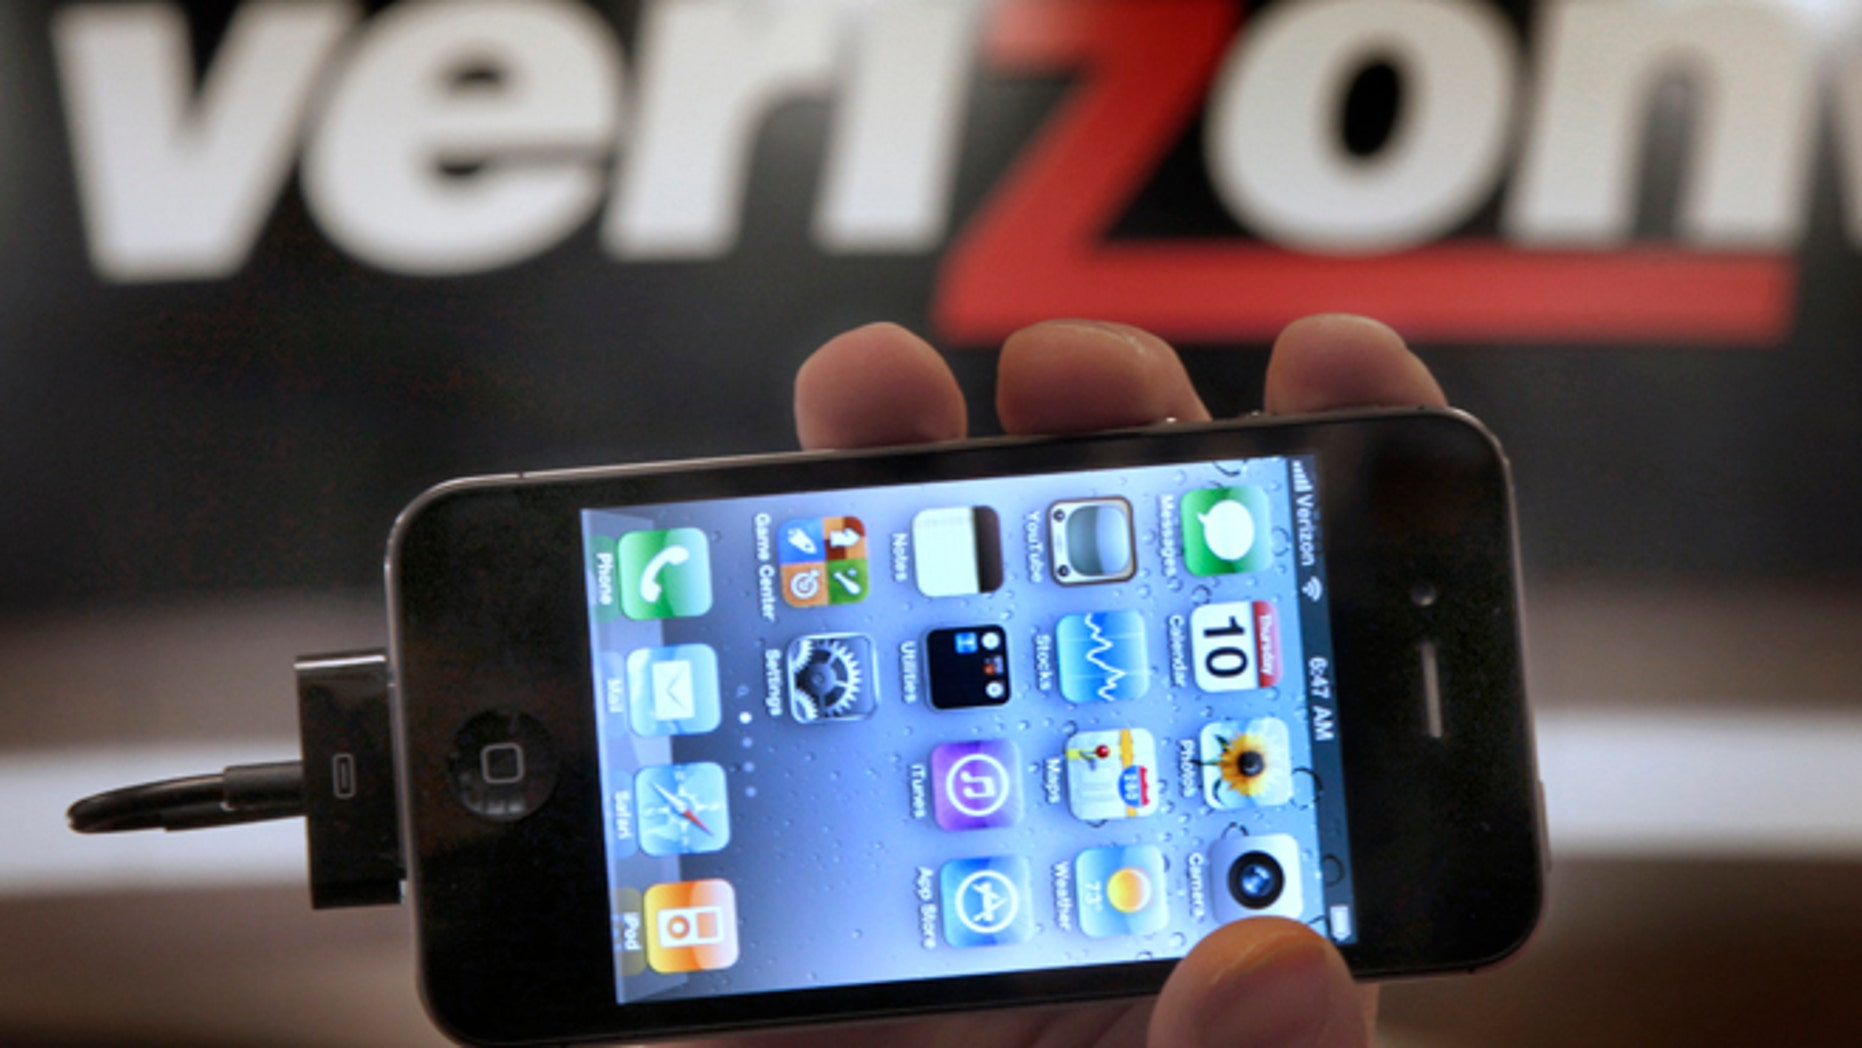 Verizon Wireless said it has essentially finished upgrading its network, as the race to provide speedy wireless service heats up.